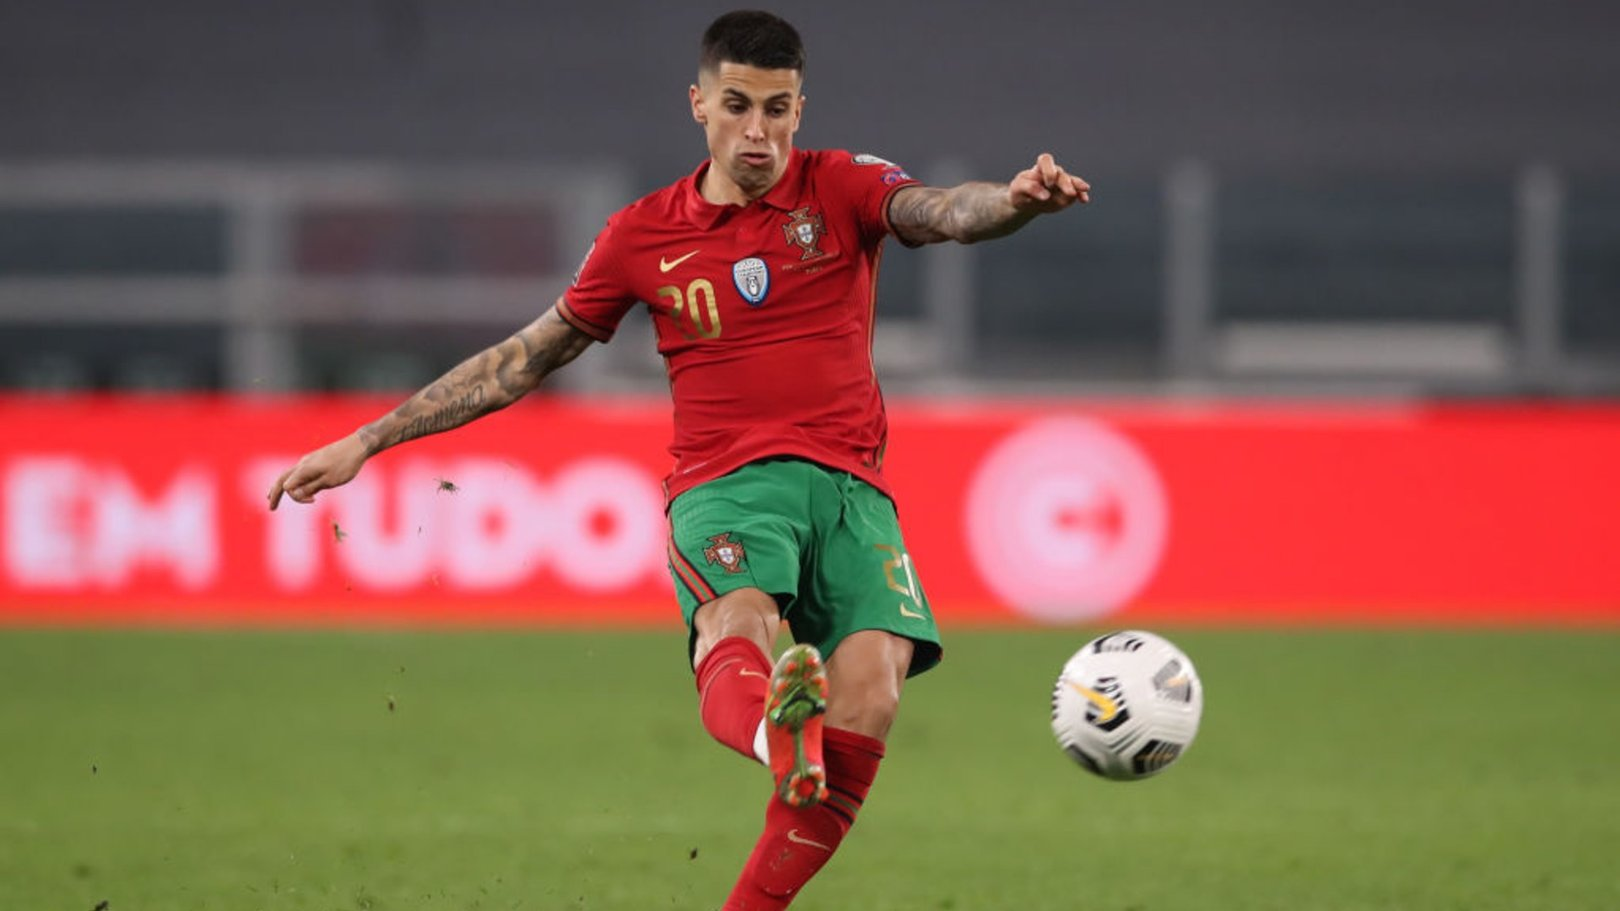 Cancelo scores as City trio help Portugal to Euro 2020 warmup win